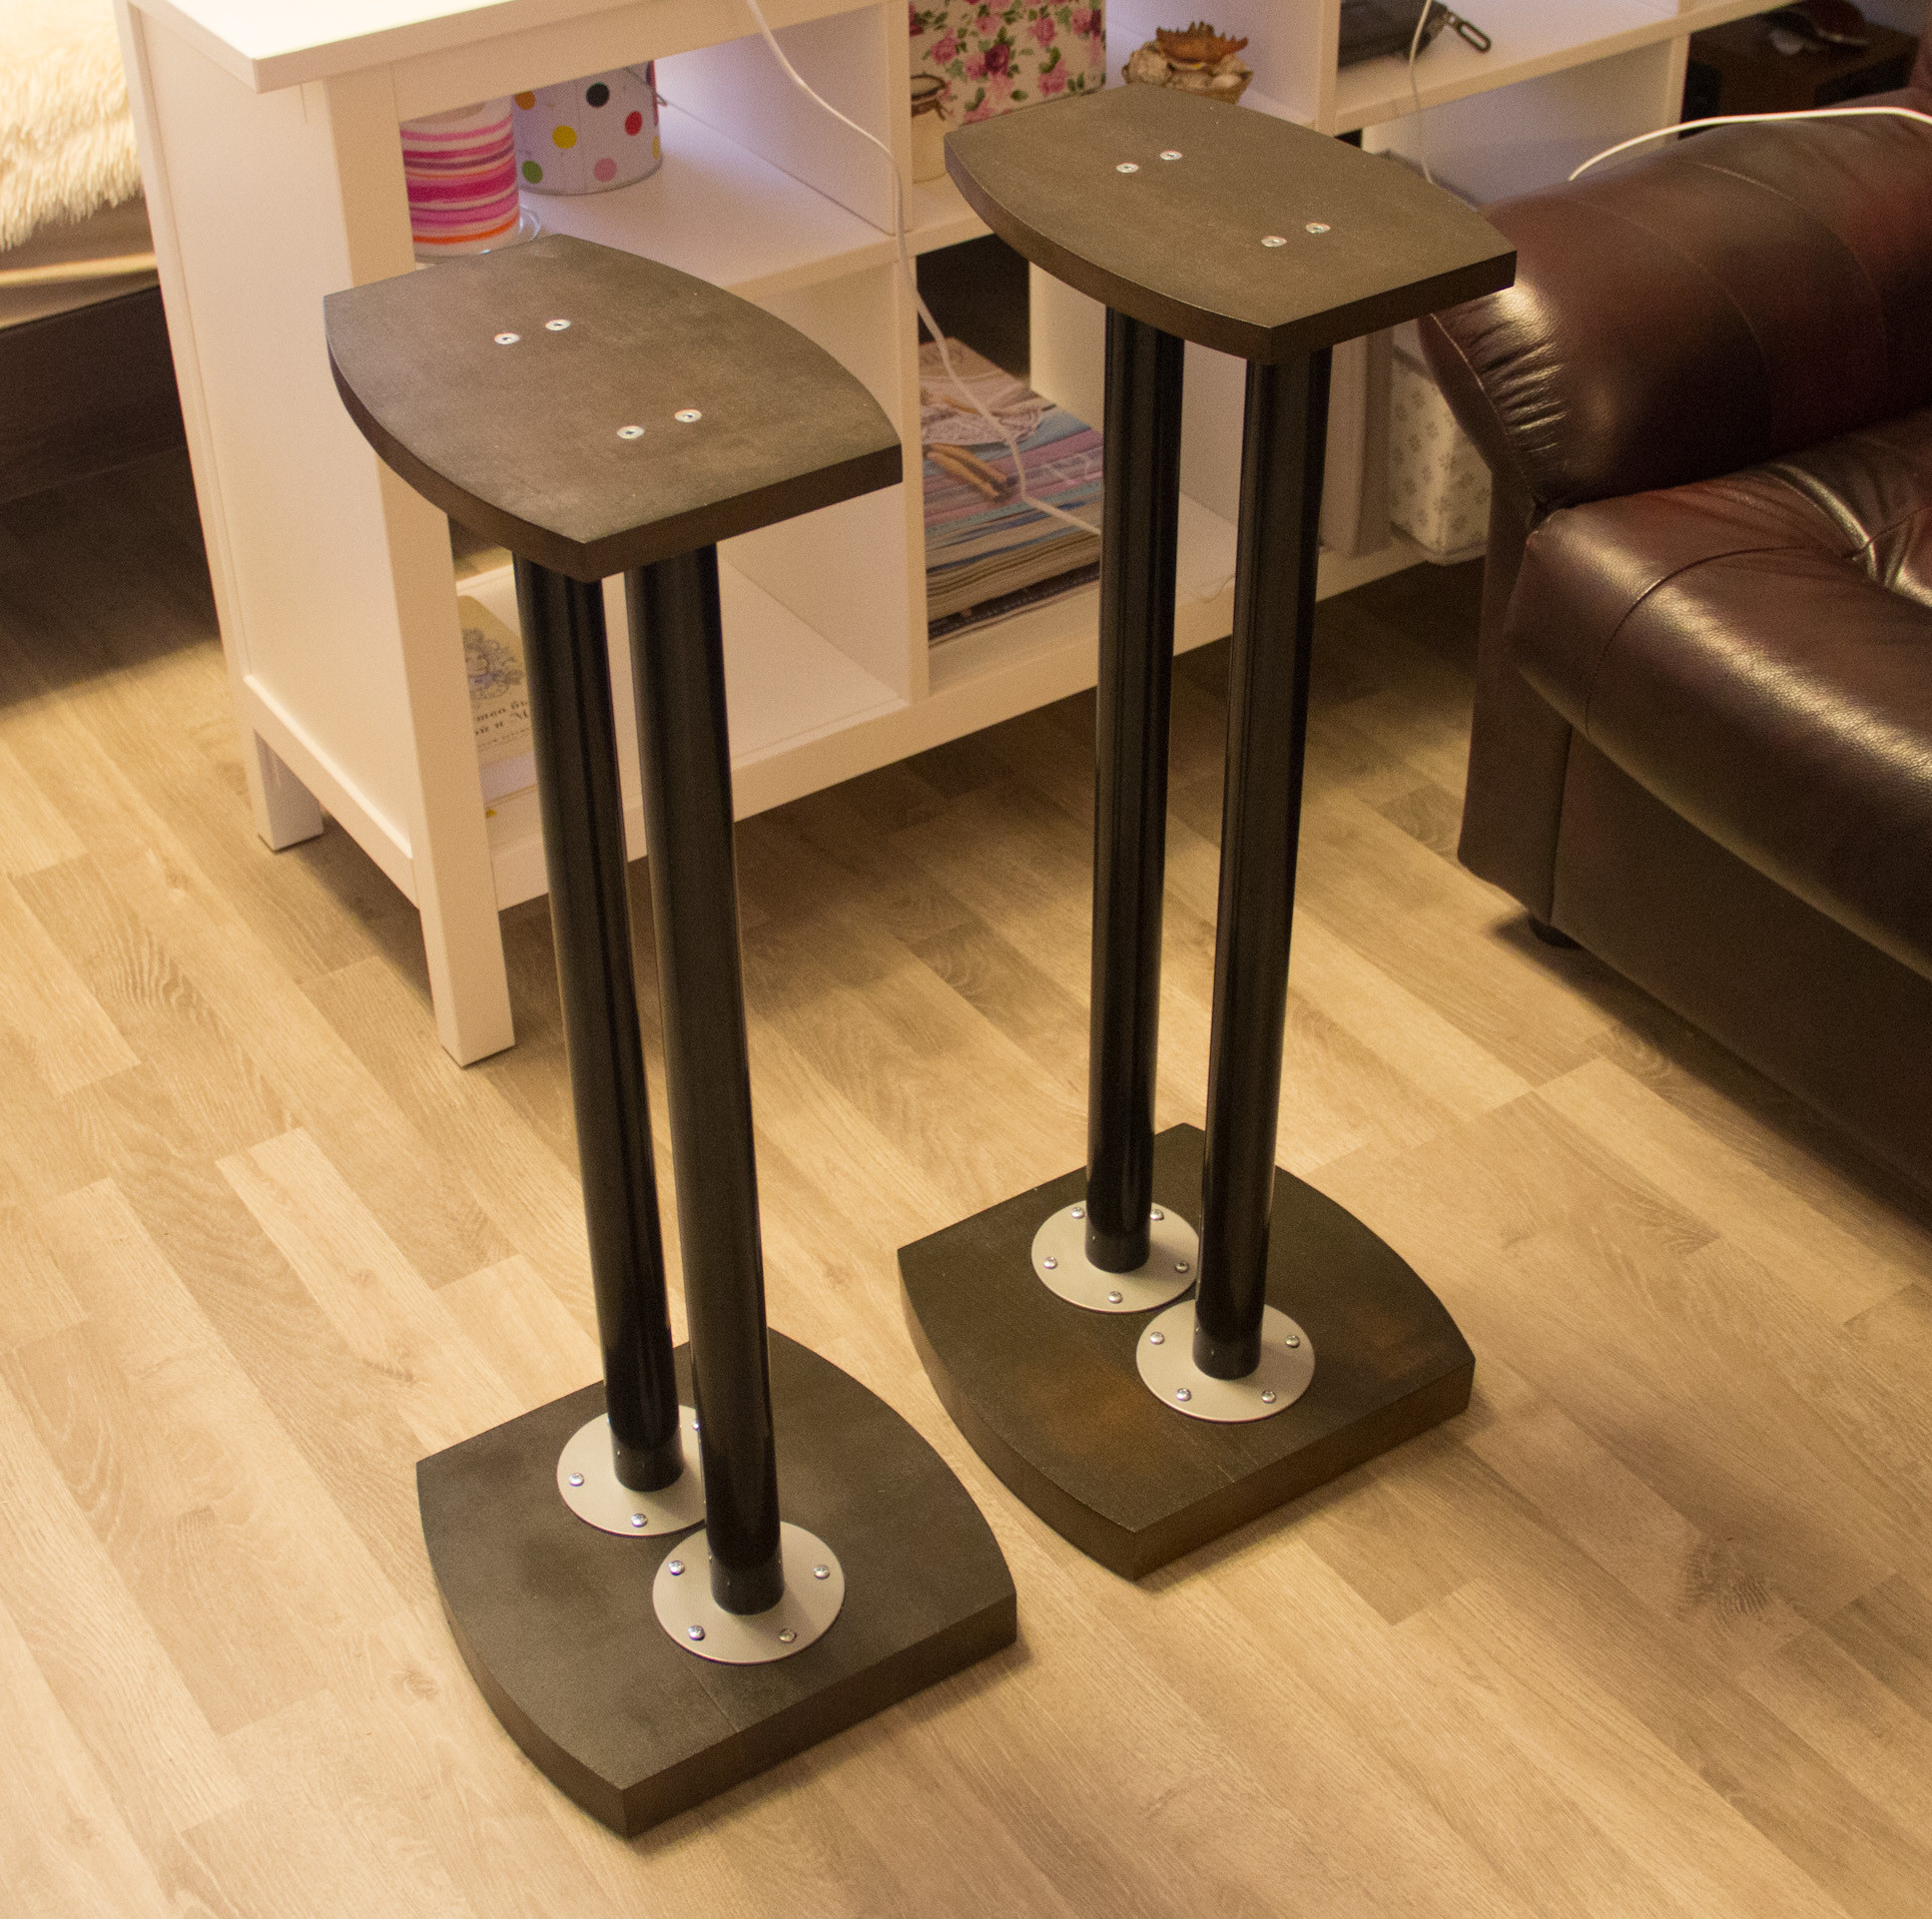 Best ideas about DIY Speaker Stands . Save or Pin Beginner Bud Audiophile – Wharfedale Diamond 10 1 and Now.